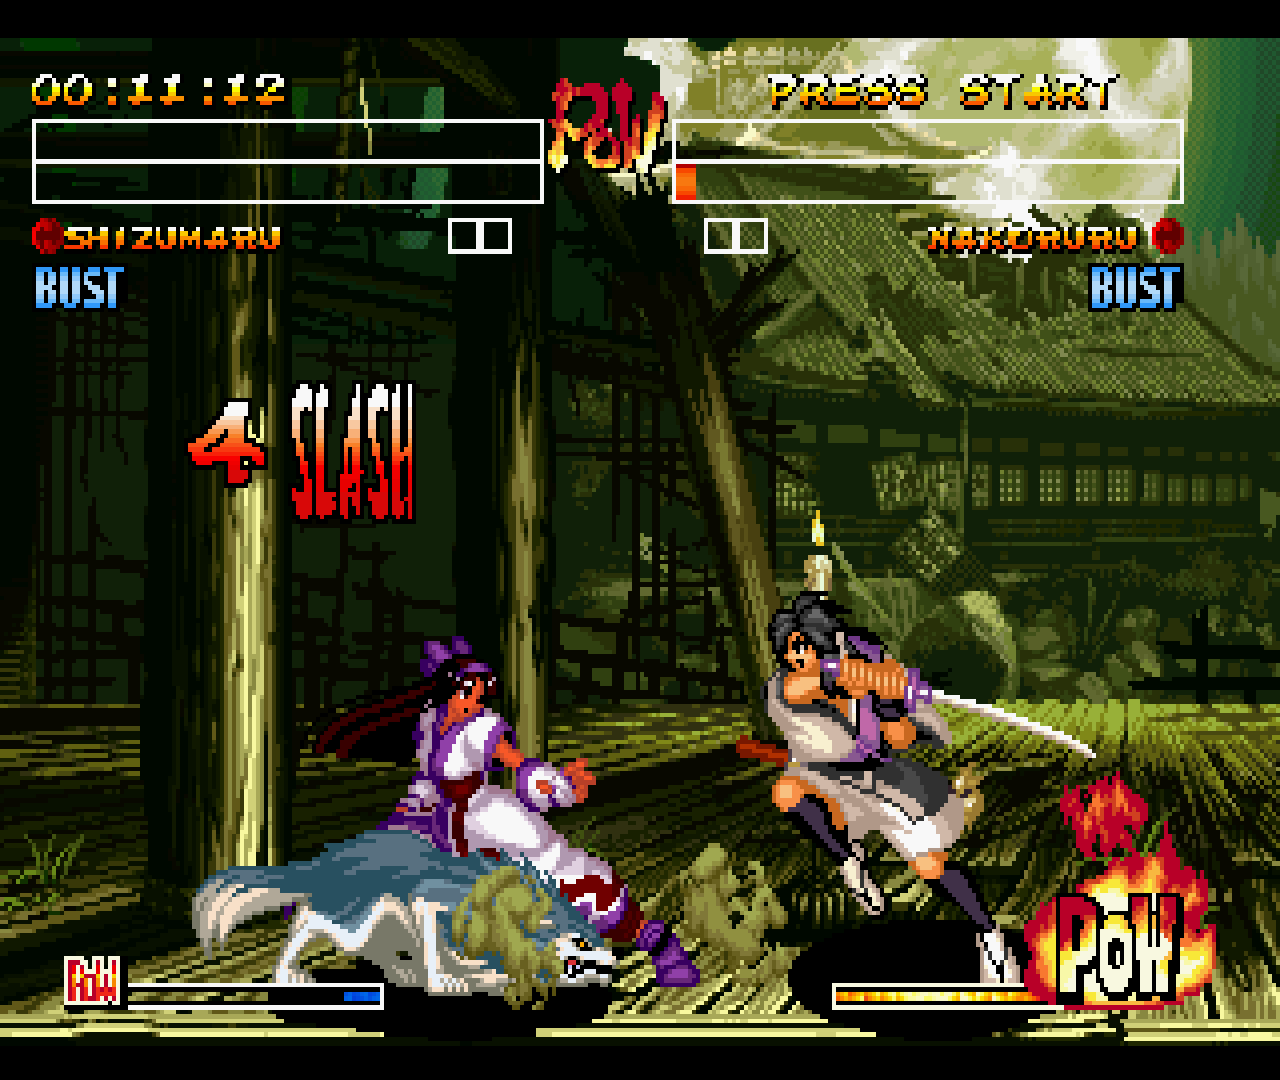 Figure 03 - The fighting animations are really good and the graphics and background really fit the setting